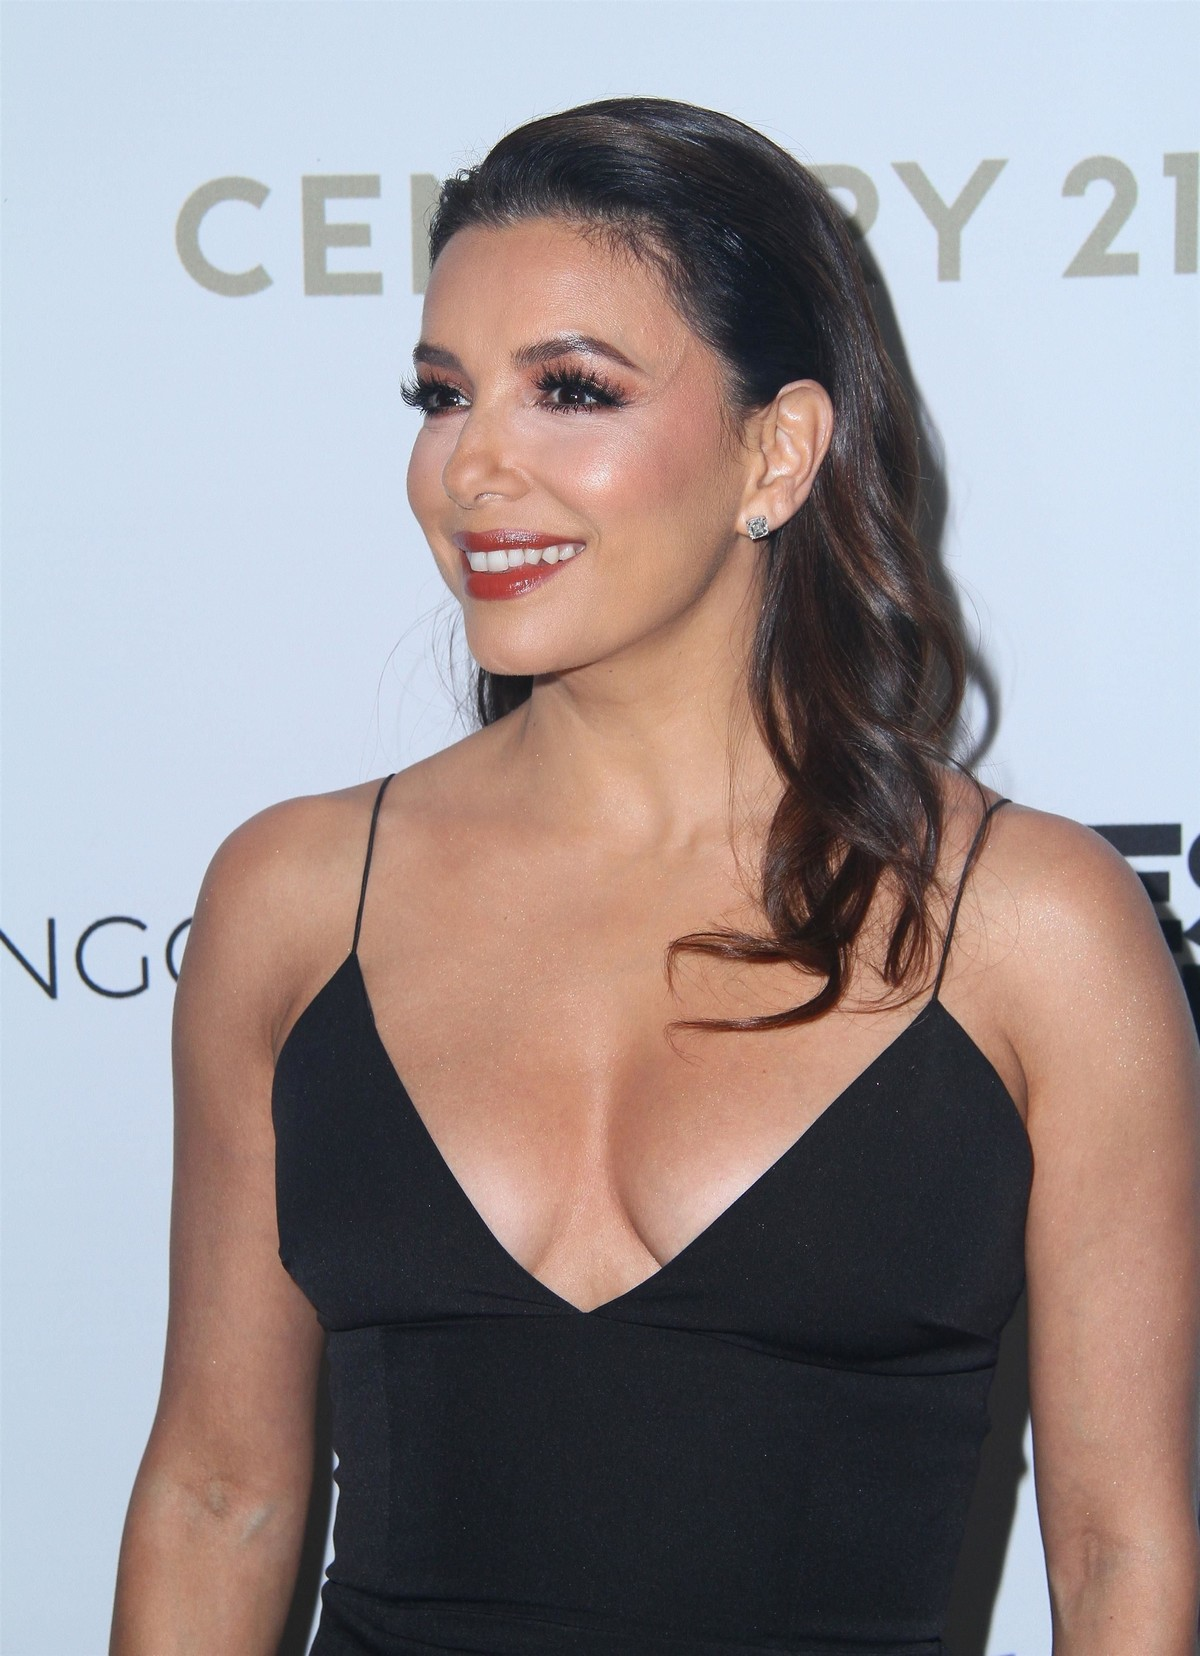 Eva Longoria attends The Eva Longoria Foundation Gala at the Four Seasons in Los Angeles 2019/11/15 4